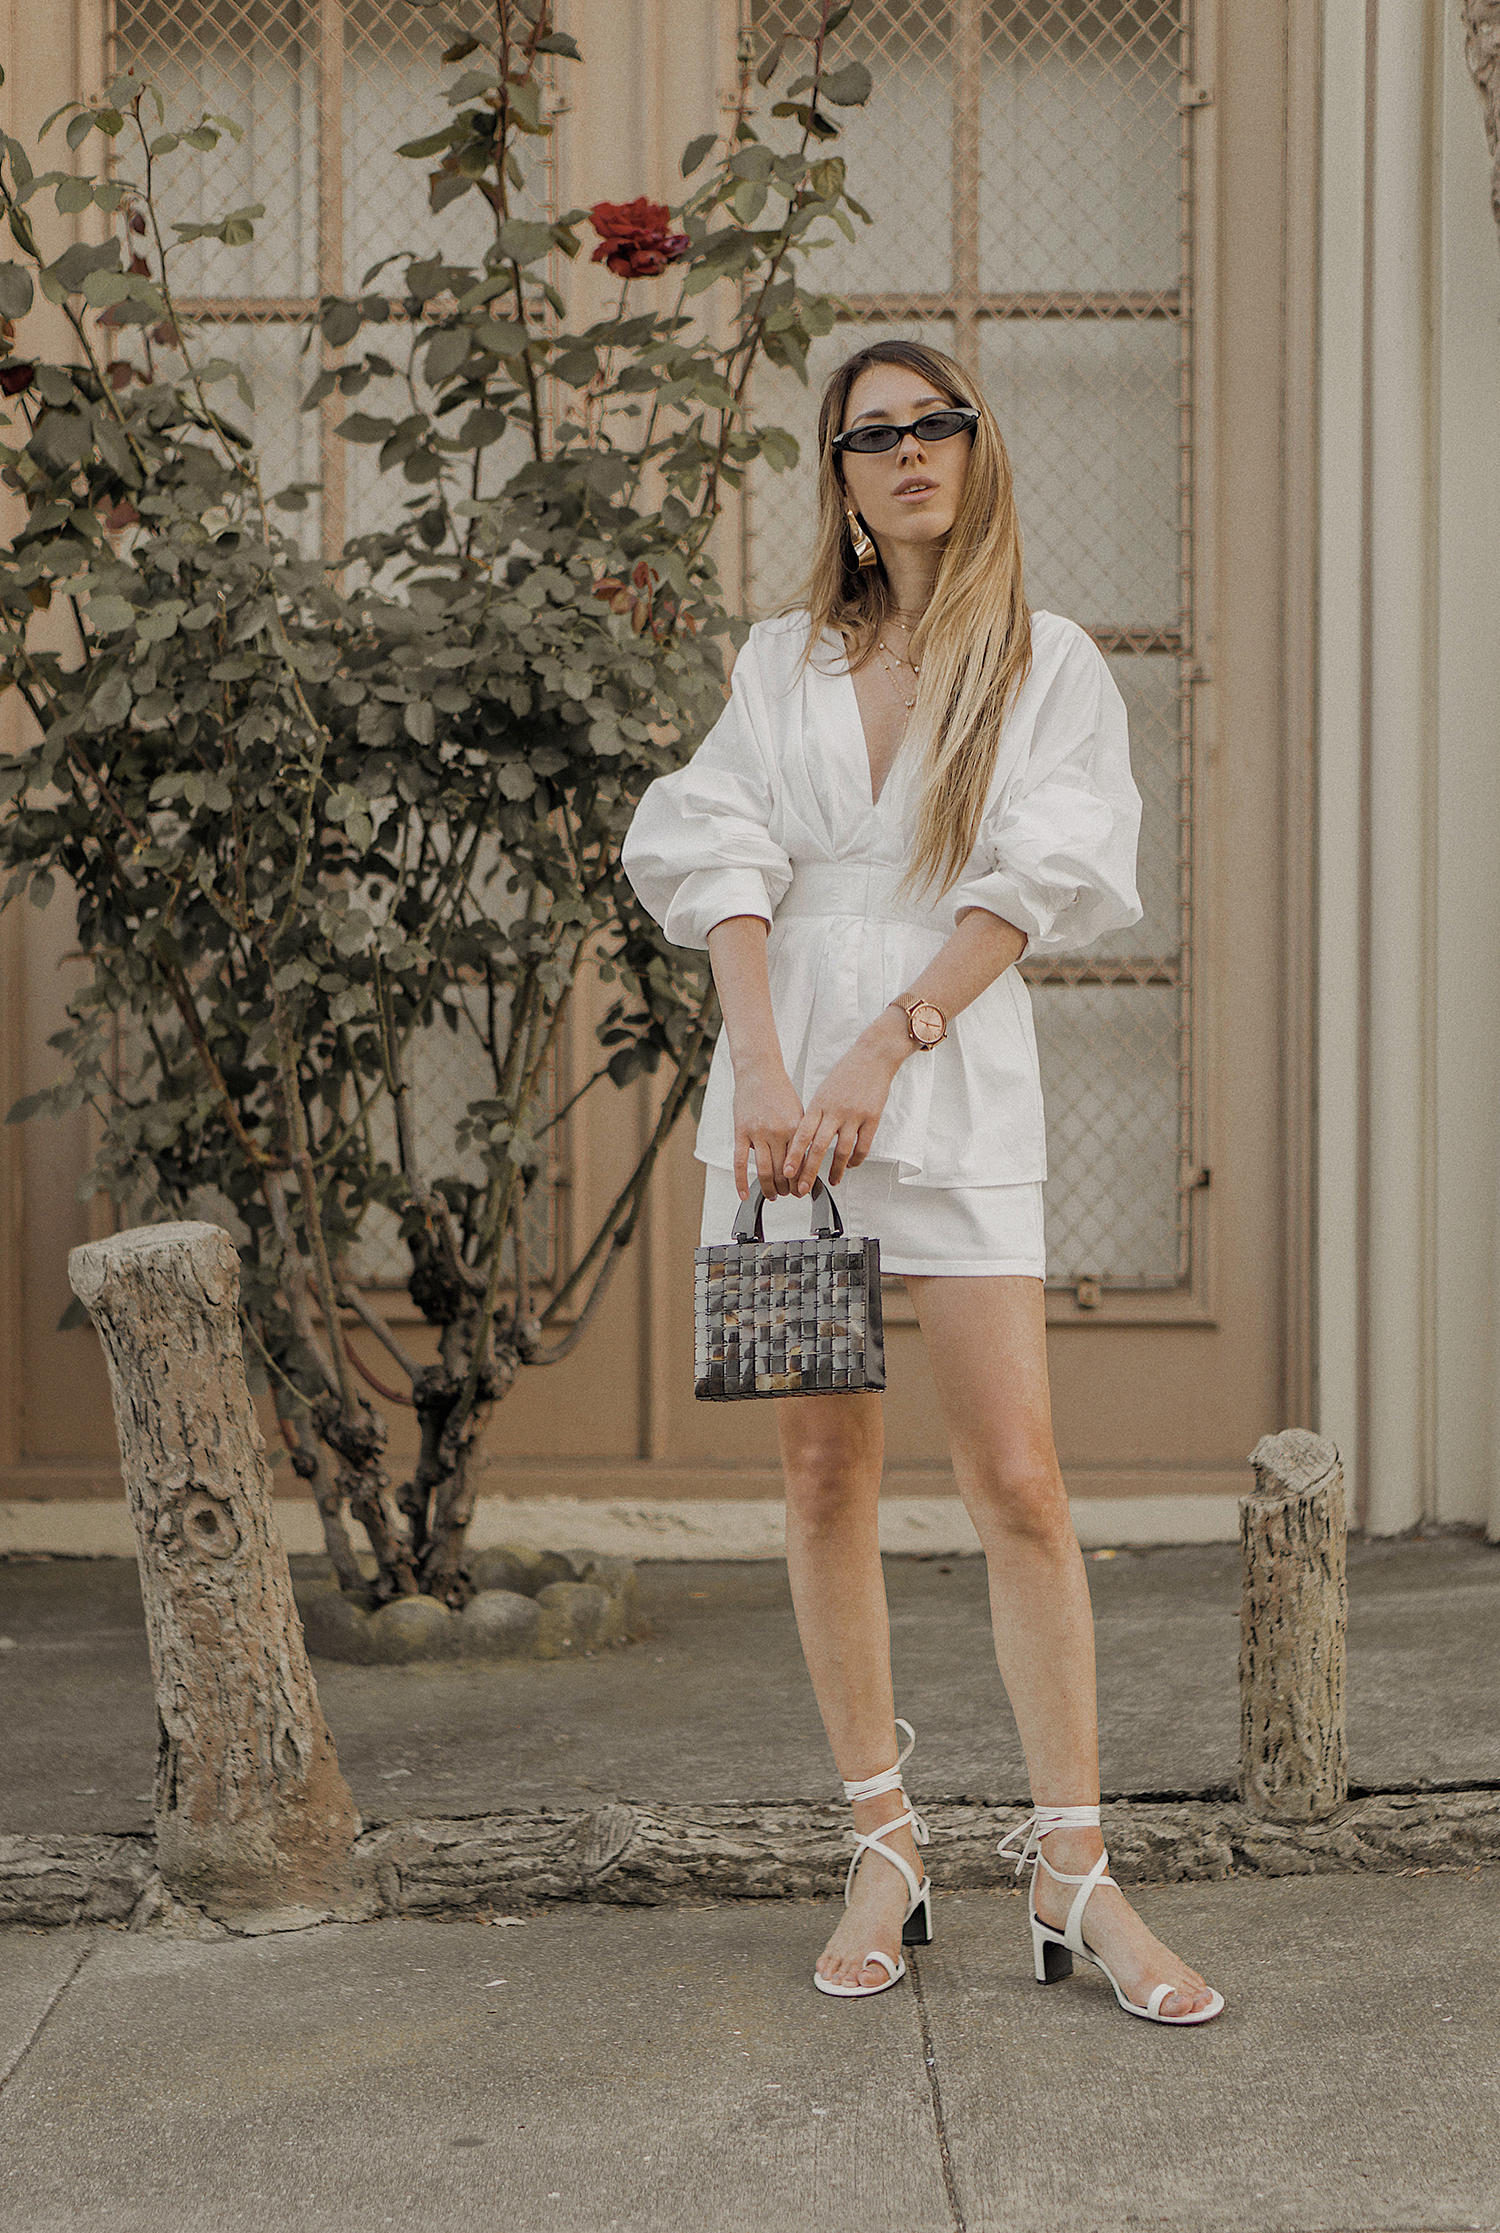 white_outfit_look_ideas_street_style_total_white_Céline_inspired_Ring_Toe_Lace_Up_Sandals_summer_san_francisco_fashion_blogger_bay_area_the_white_ocean_lena_juice_02